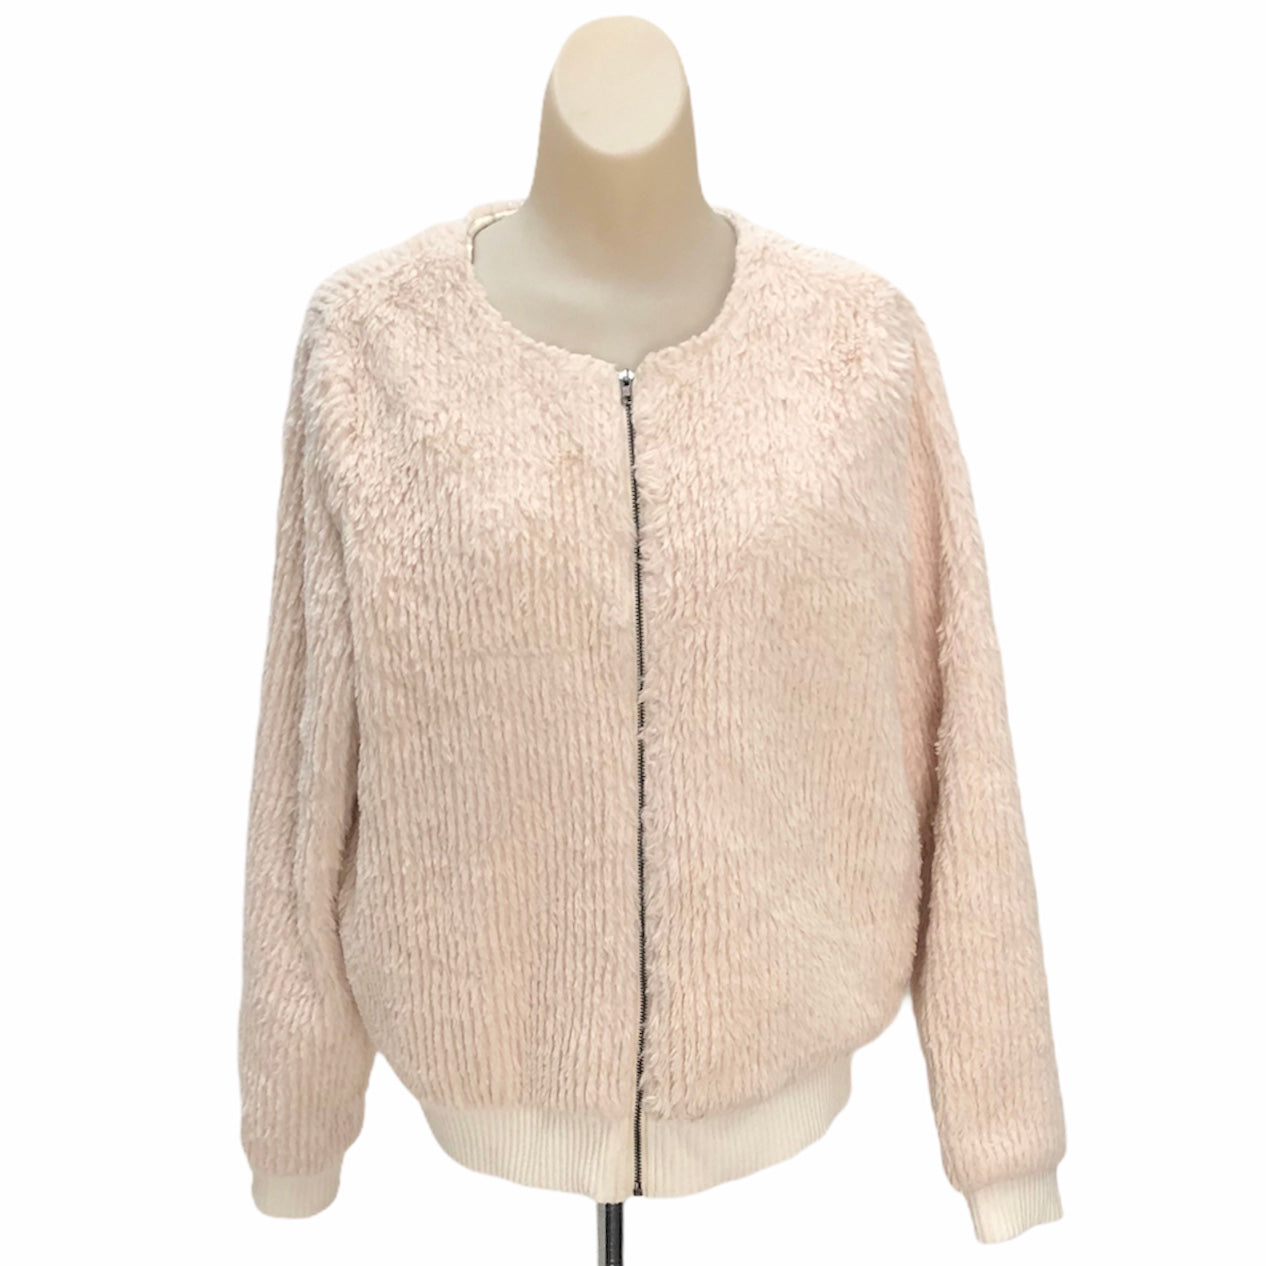 Primary Photo - BRAND: DOE & RAE <BR>STYLE: JACKET OUTDOOR <BR>COLOR: CREAM <BR>SIZE: M <BR>SKU: 293-29312-25991